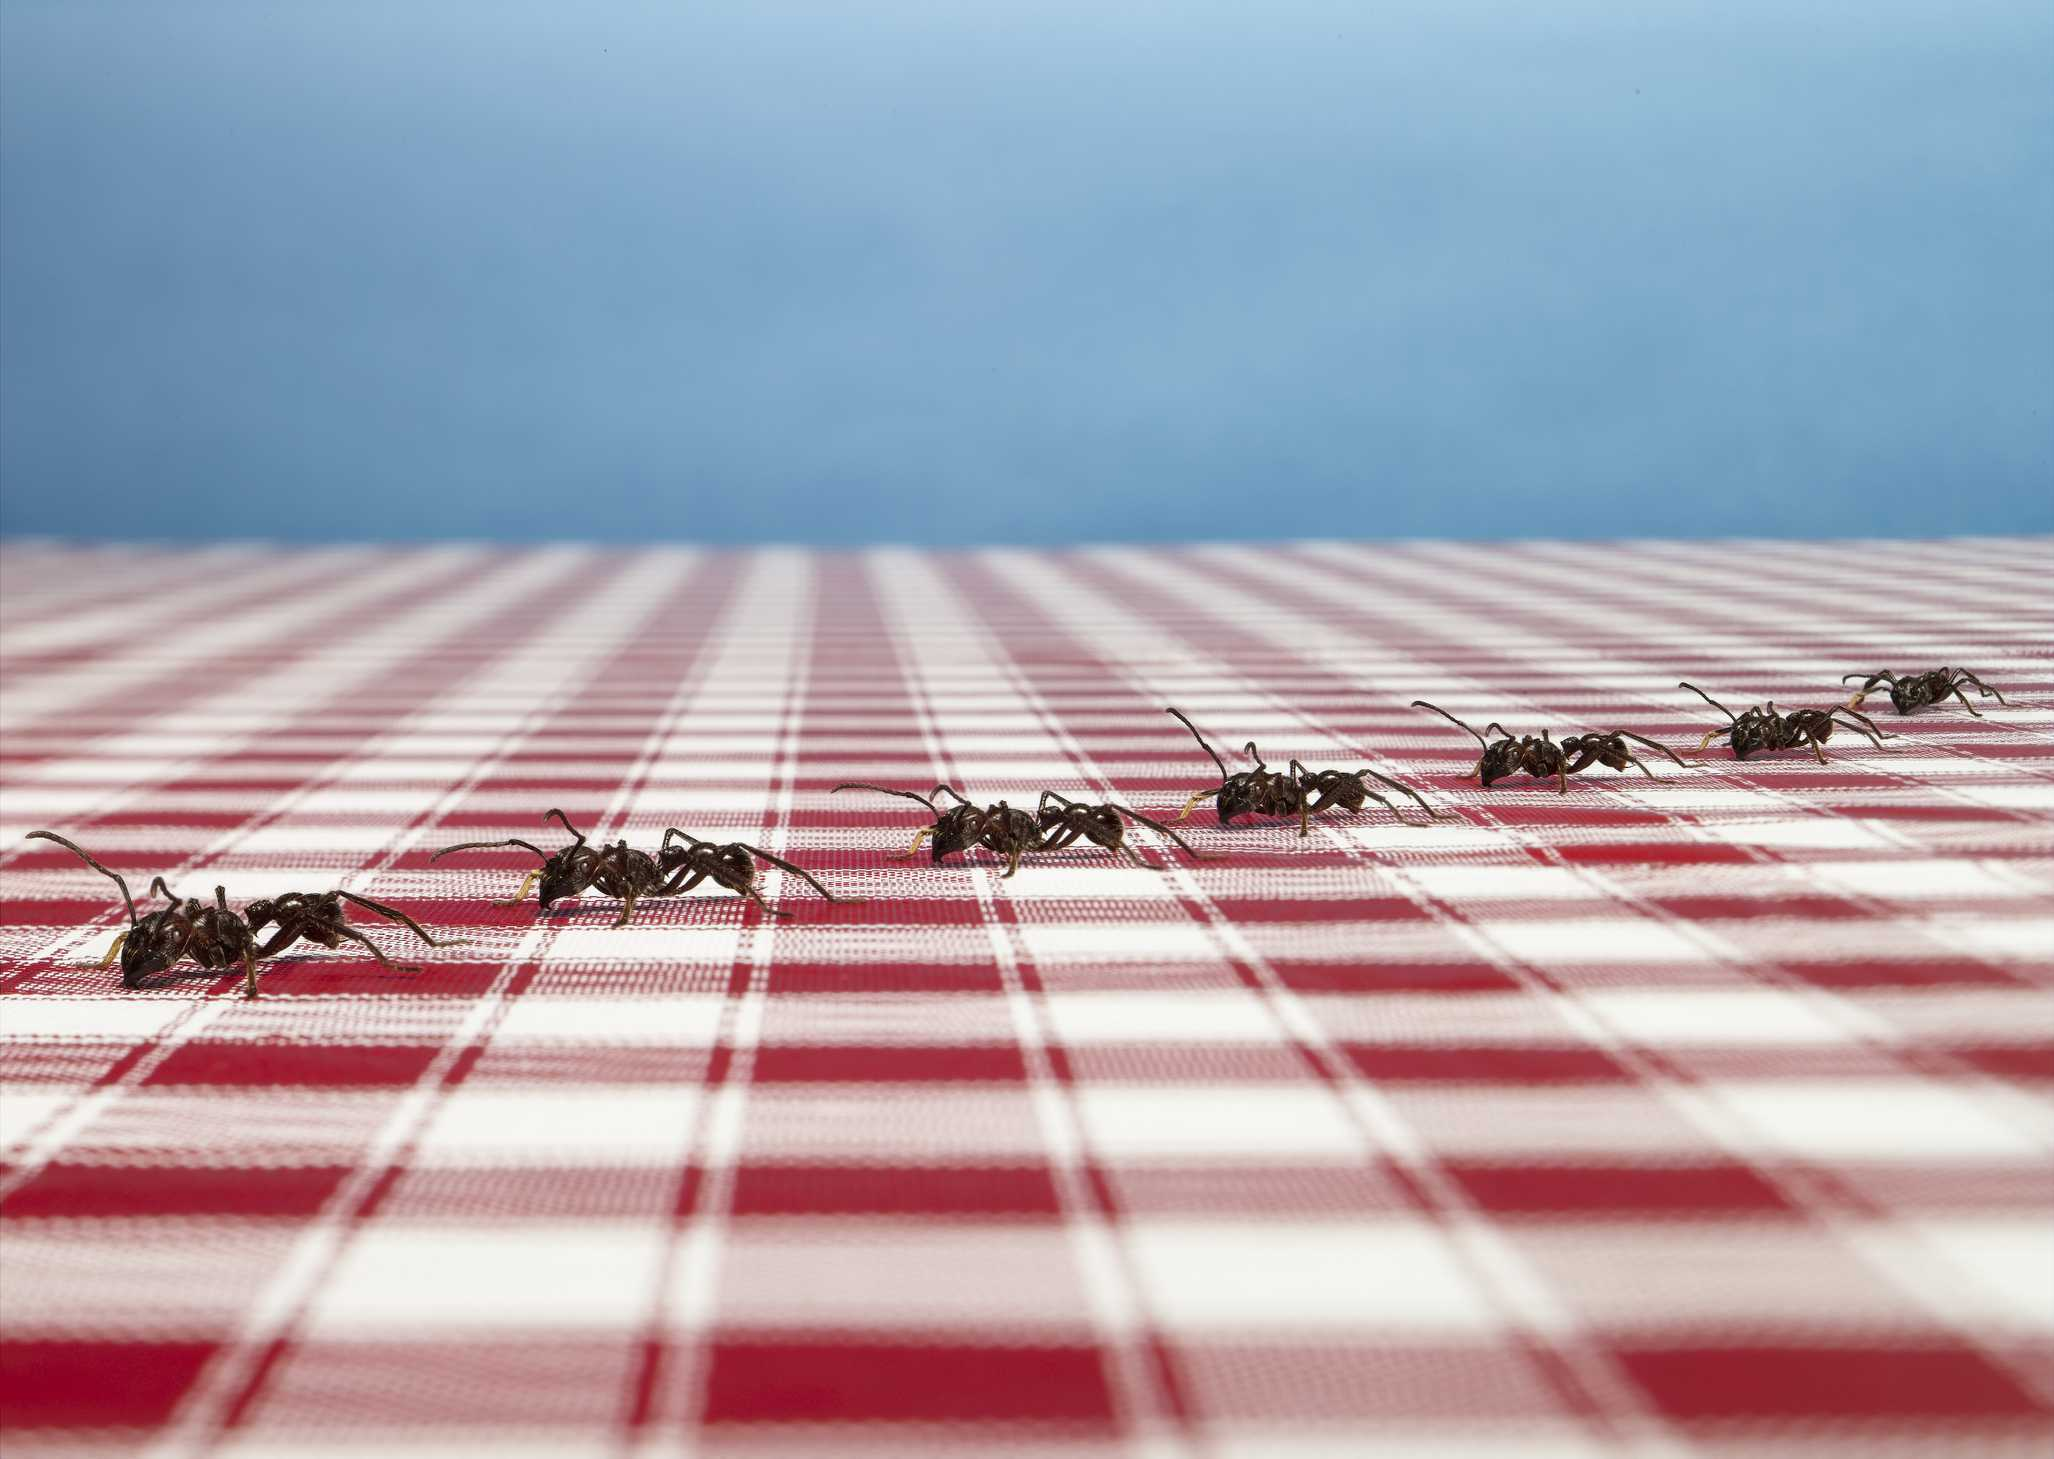 Ants on a tablecloth